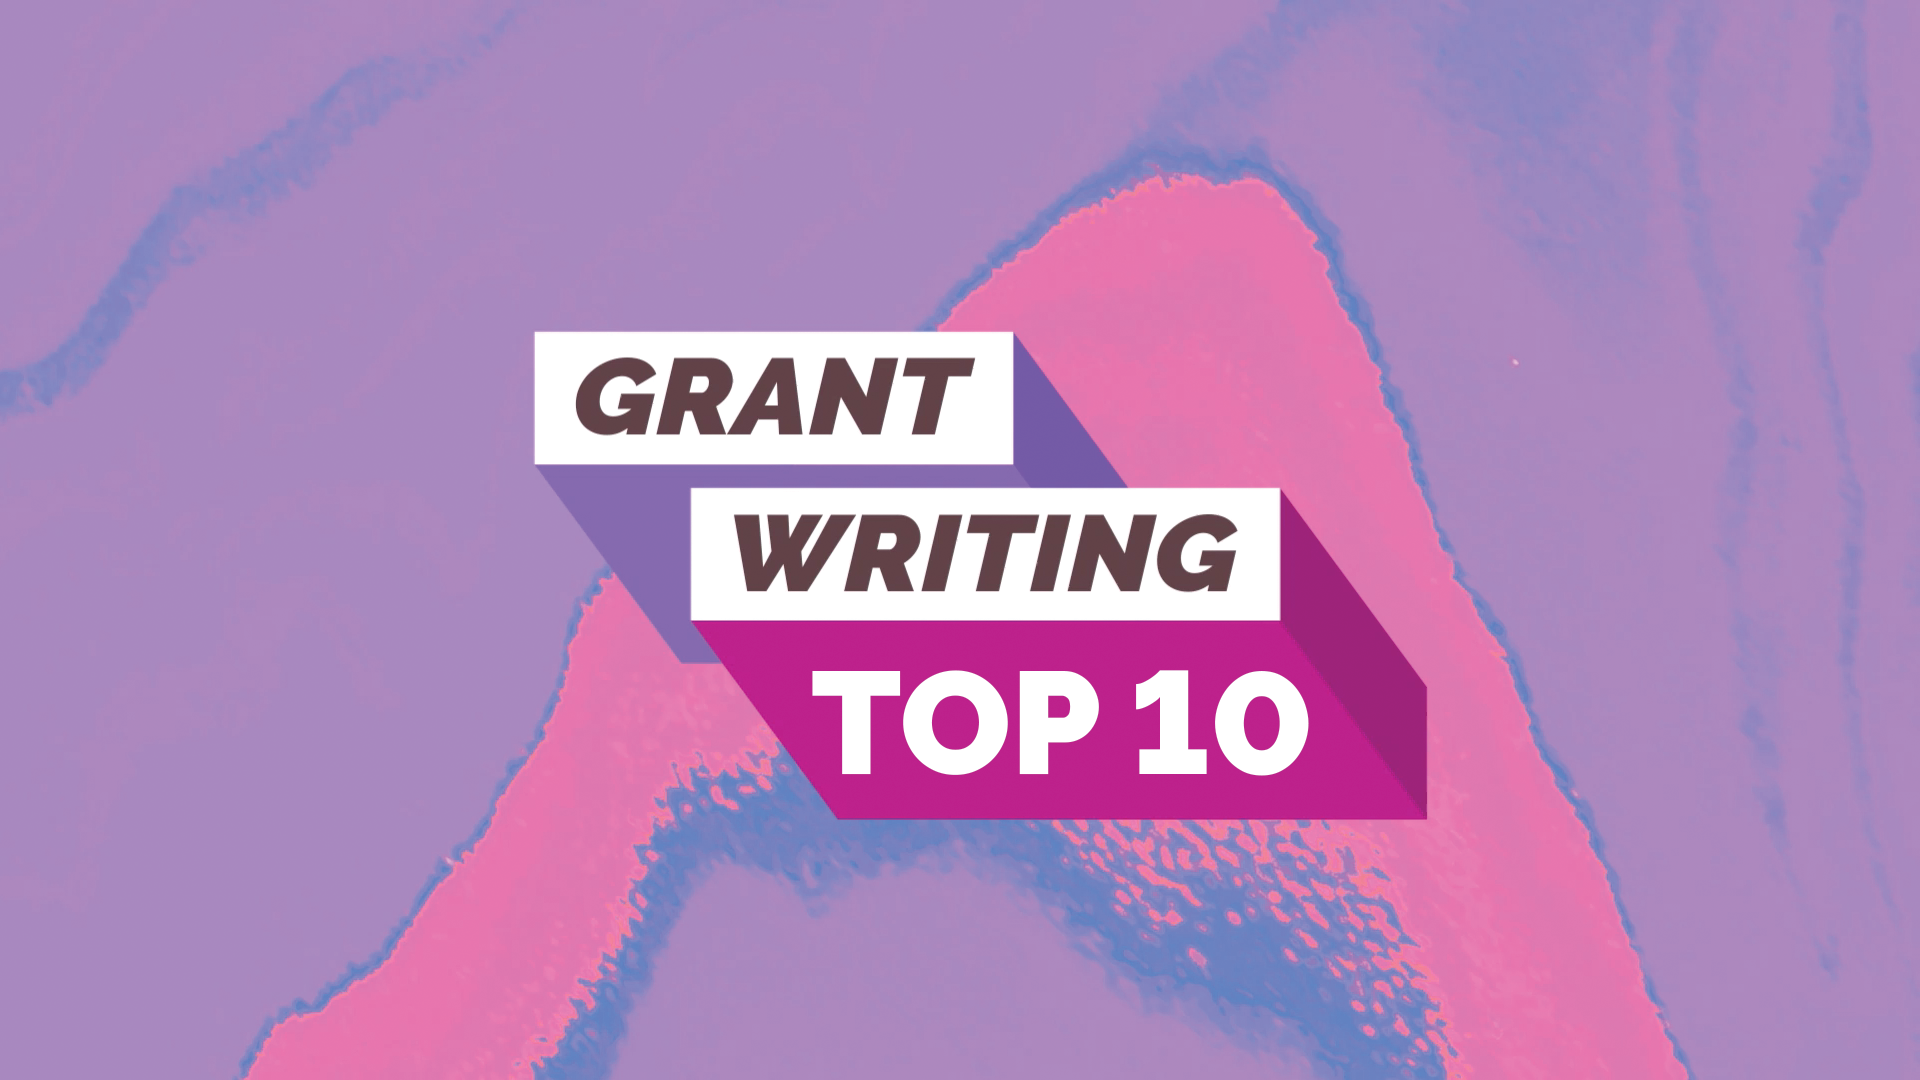 Grant Writing top 10